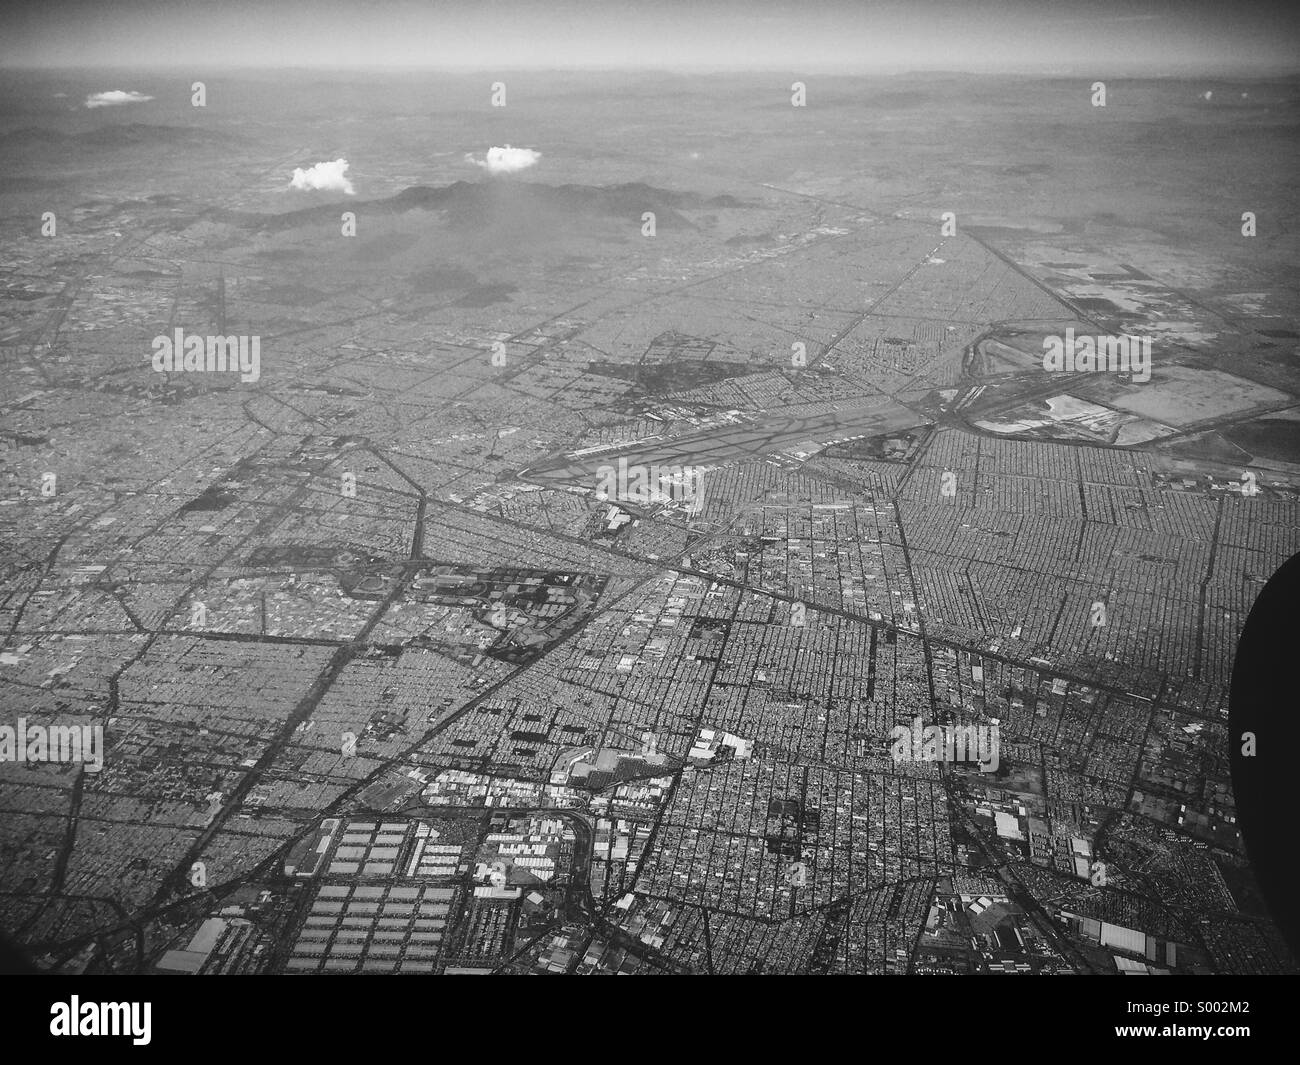 Aerial view of Mexico City - Stock Image